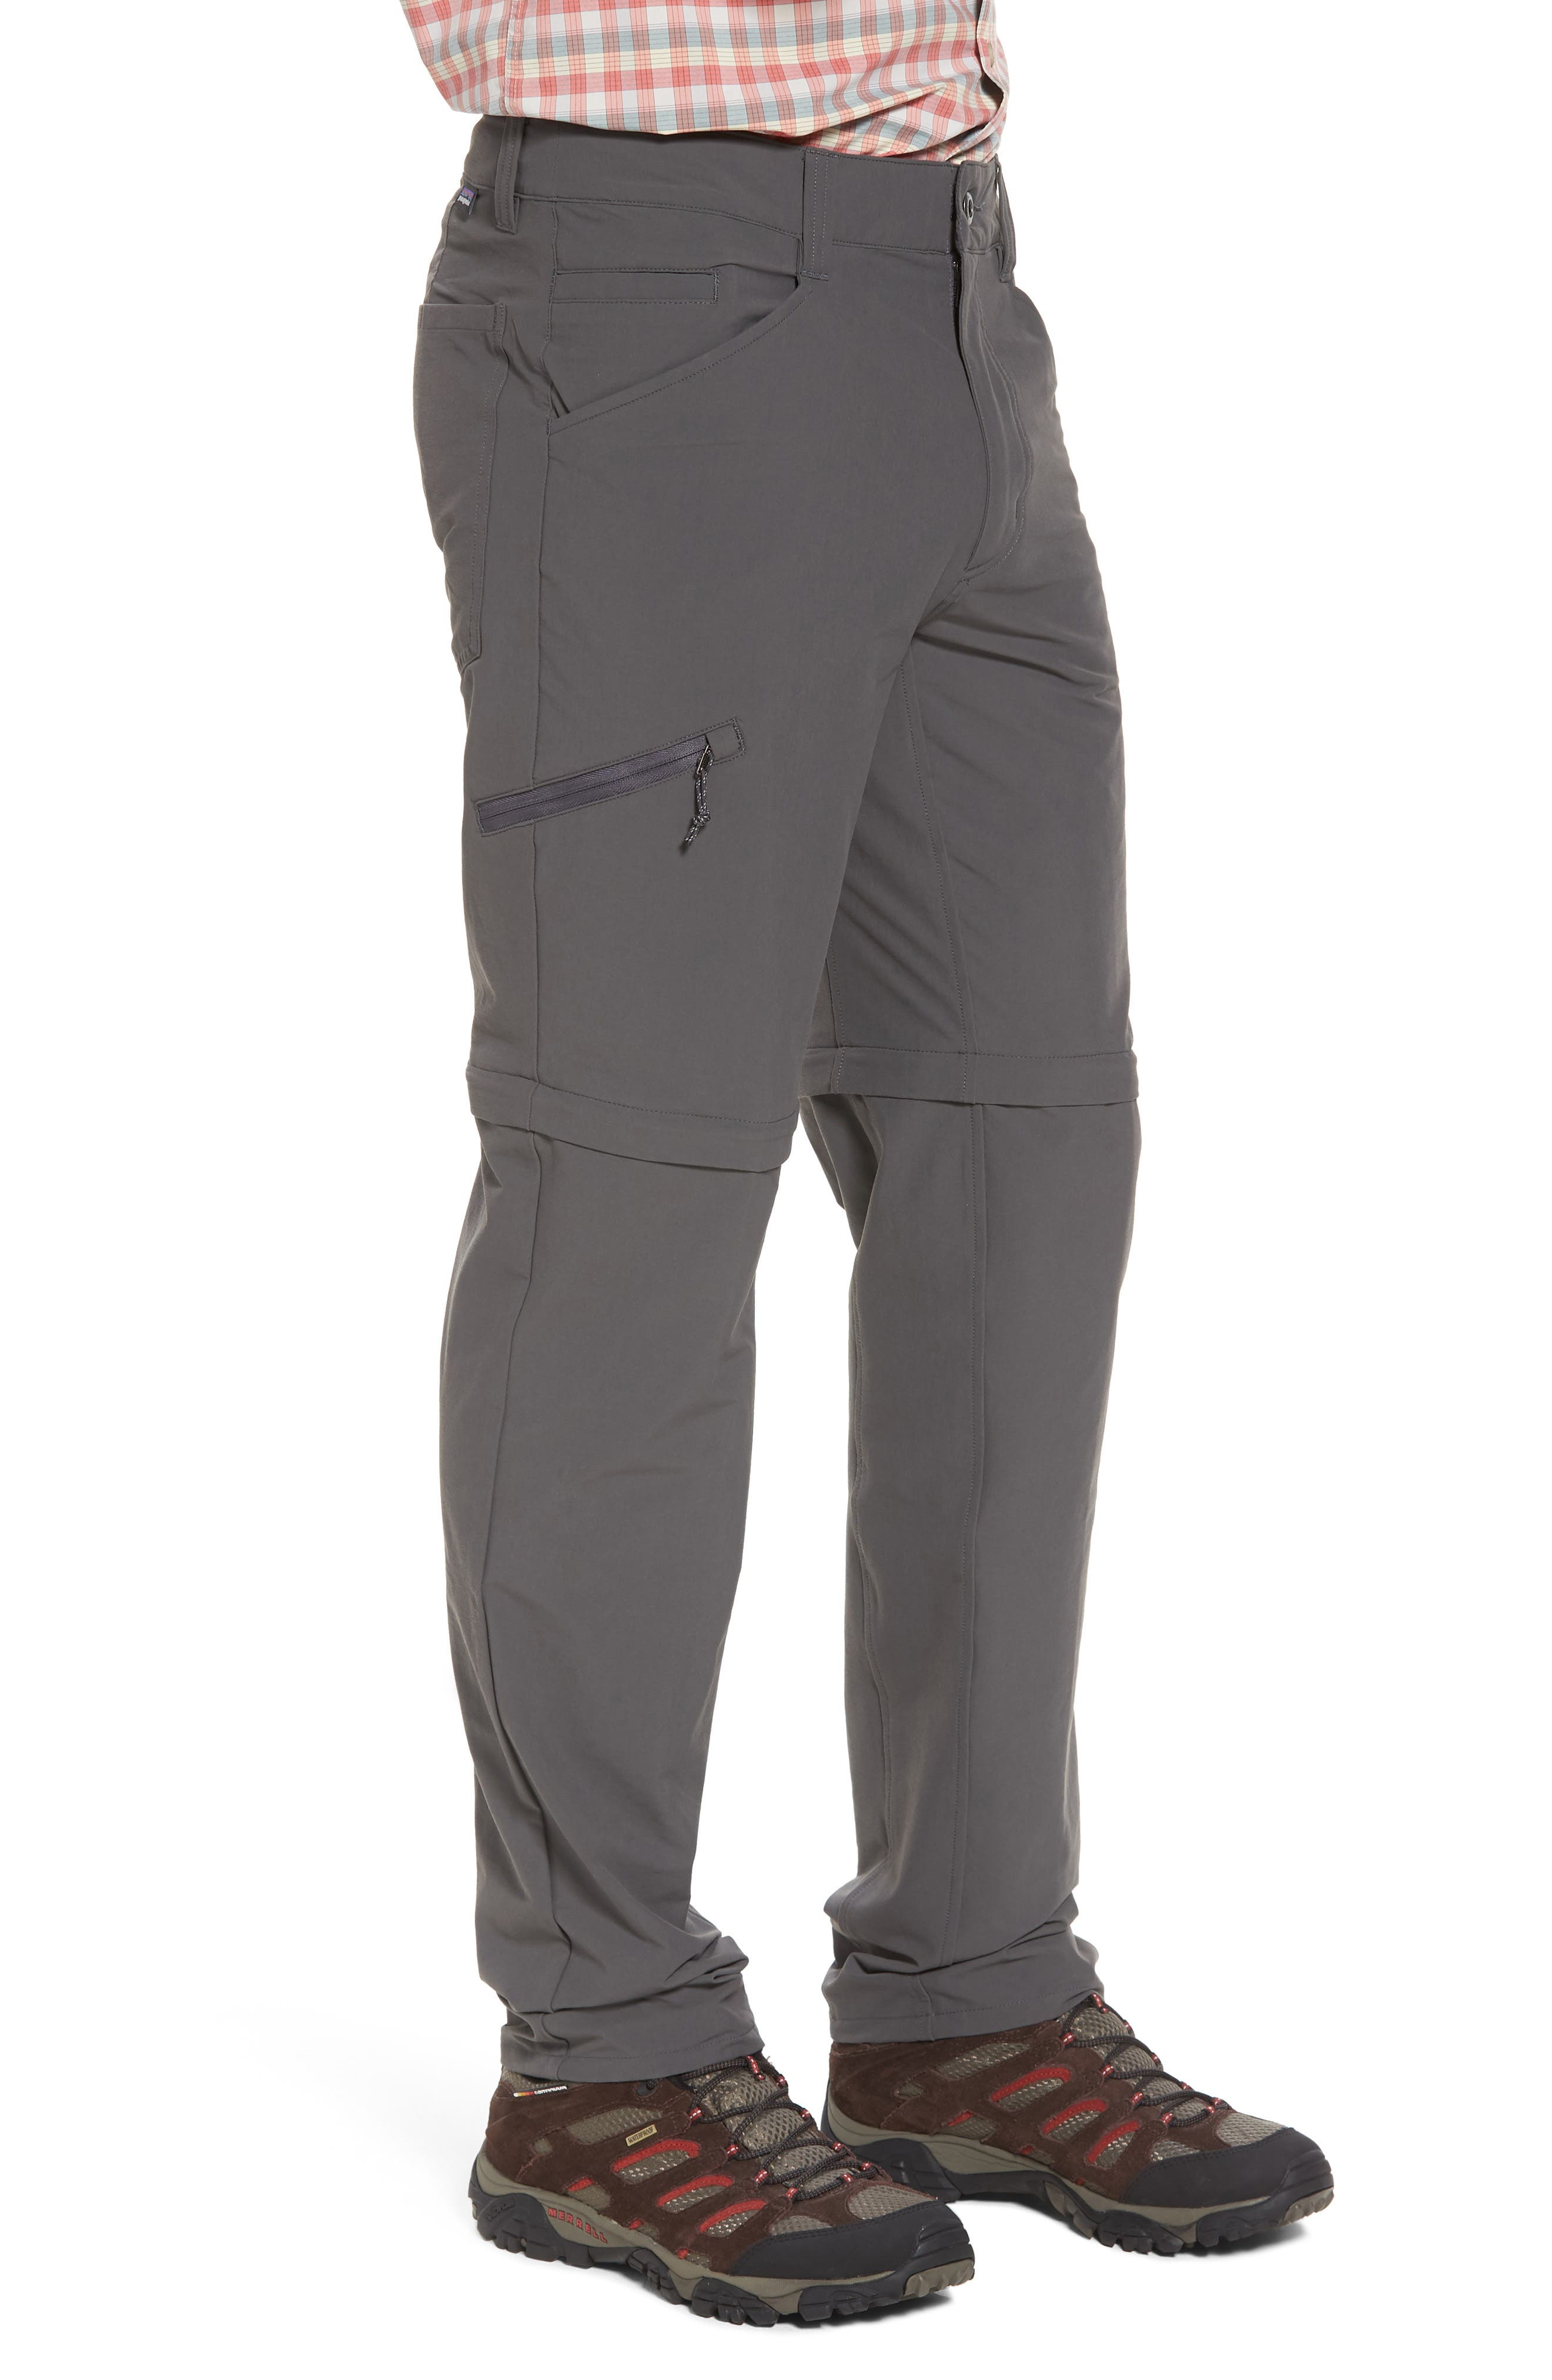 M's Quandry Convertible Pants,                             Alternate thumbnail 3, color,                             FORGE GREY